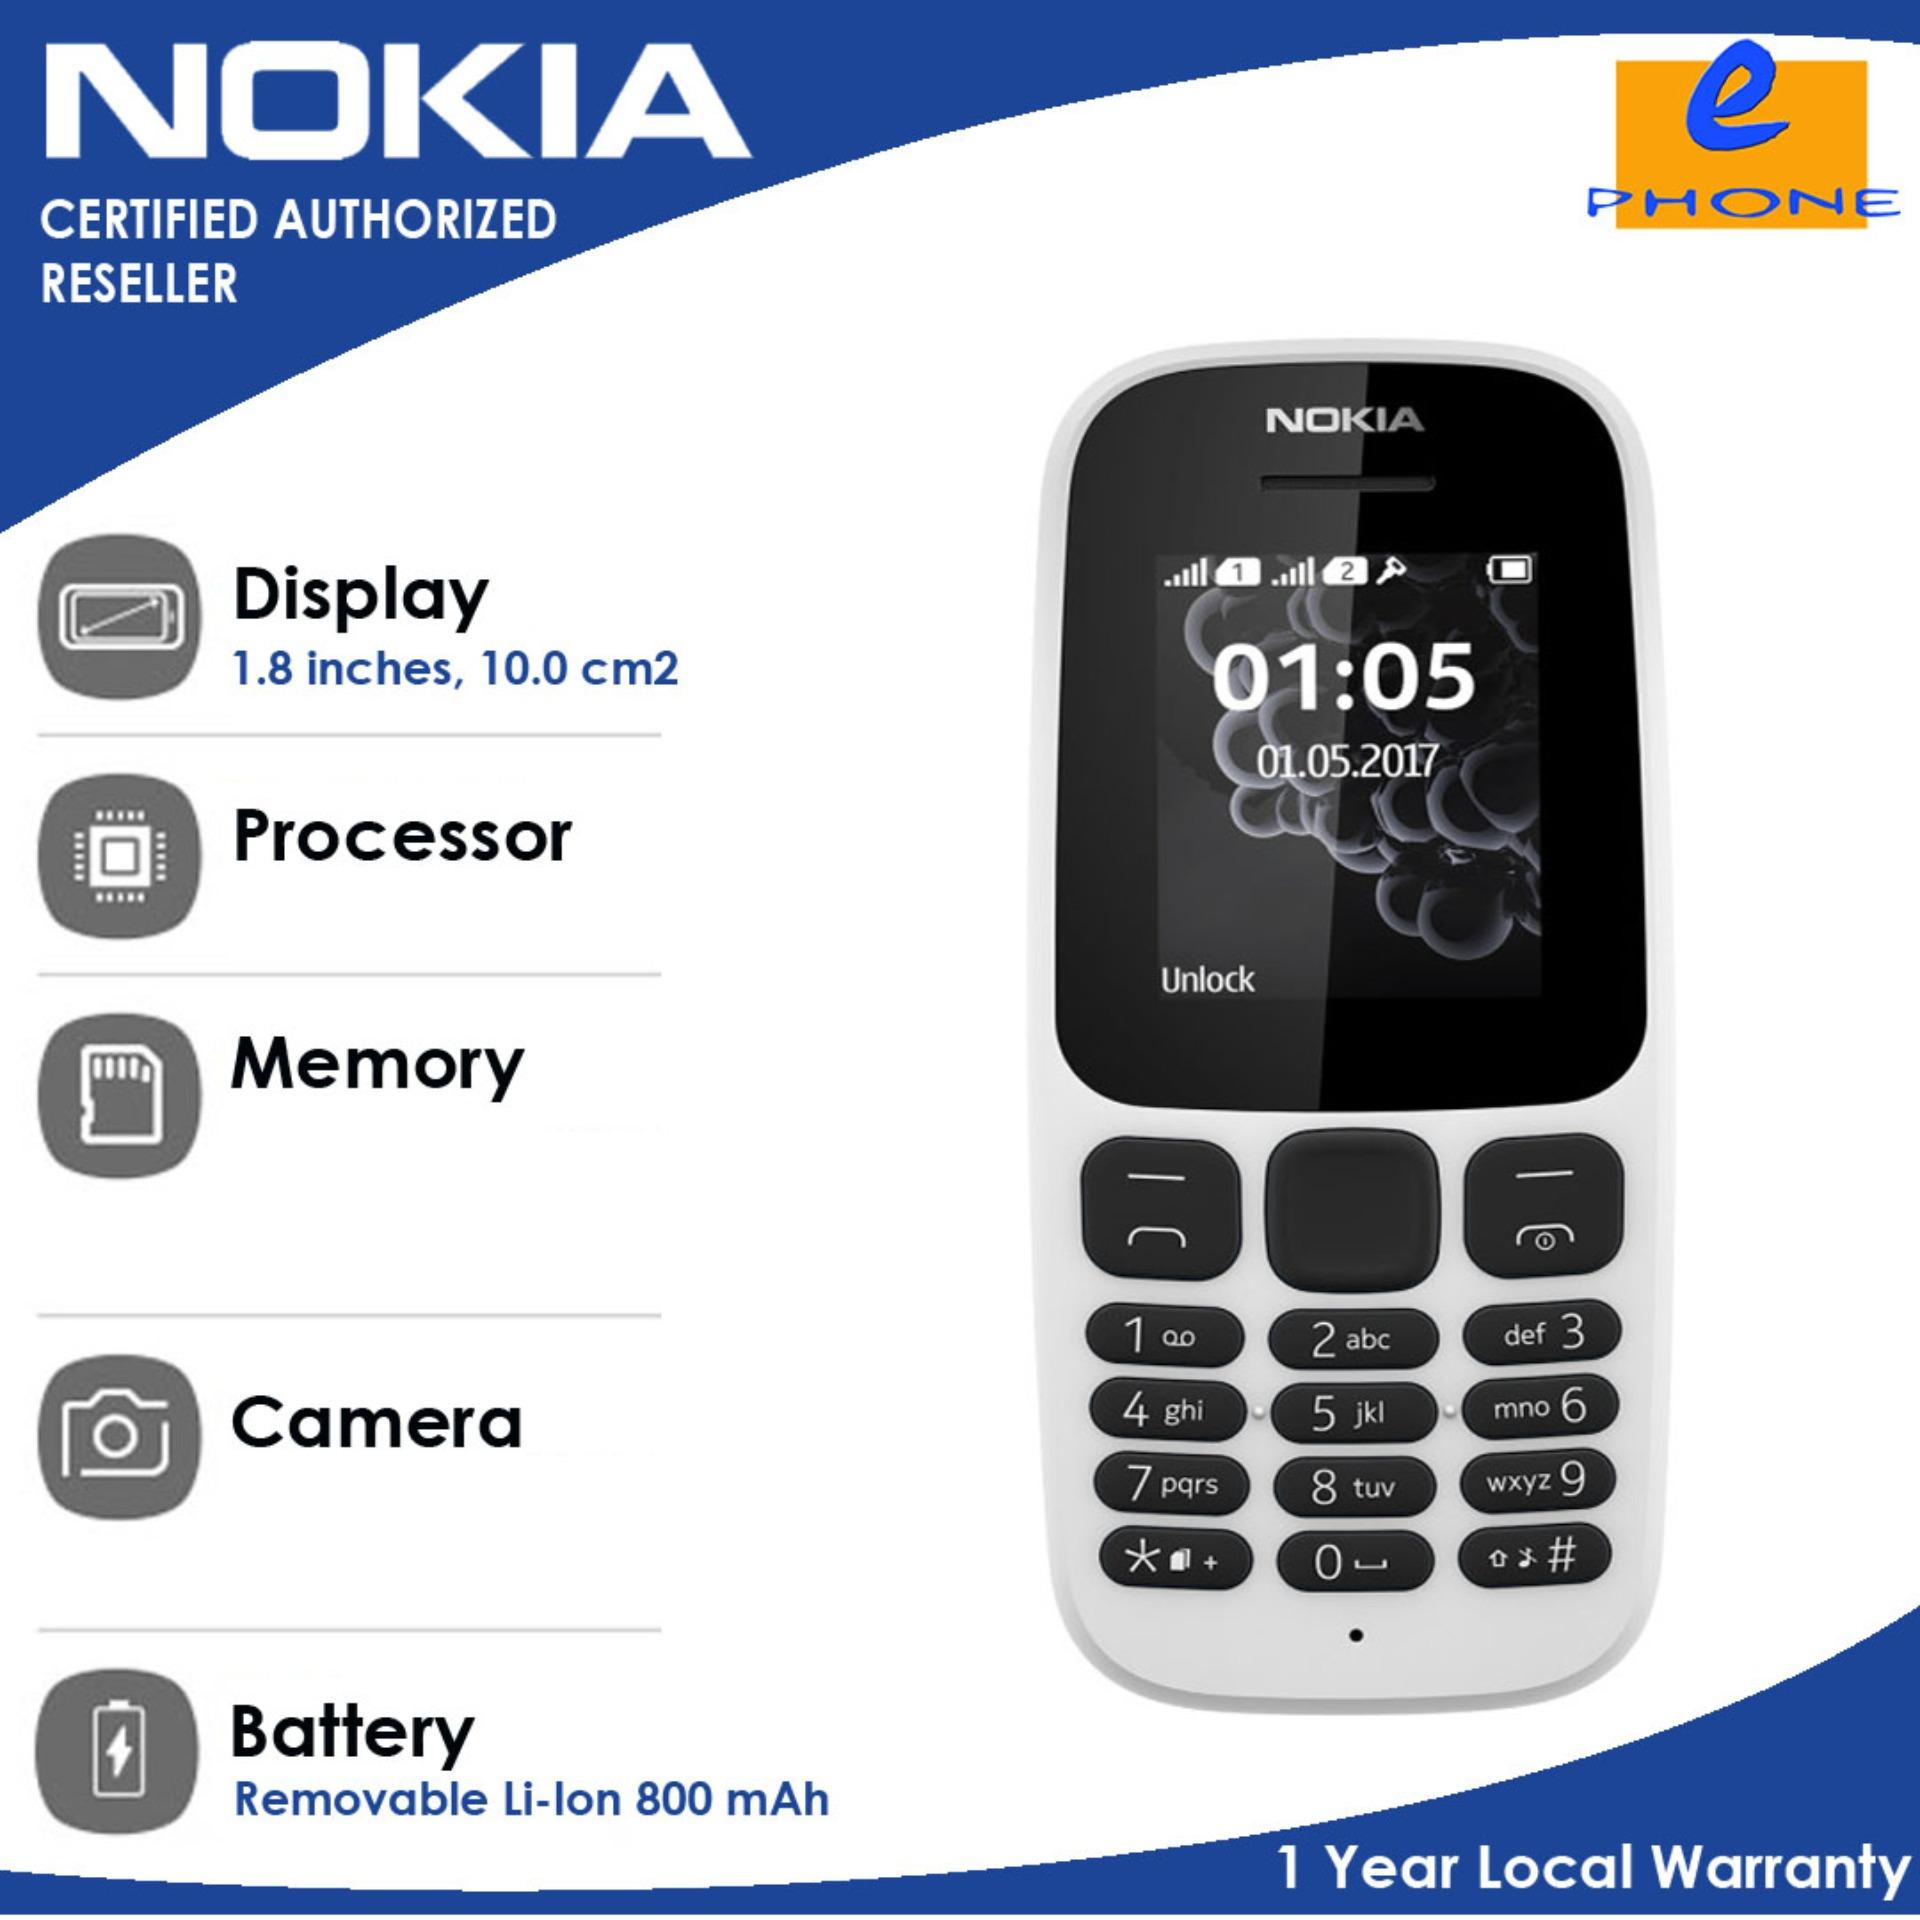 Buy Sell Cheapest Nokia 105 Blackt Best Quality Product Deals 2017 18 Inches 4mbram 800 Mah With 1 Year Local Warranty Authentic Original